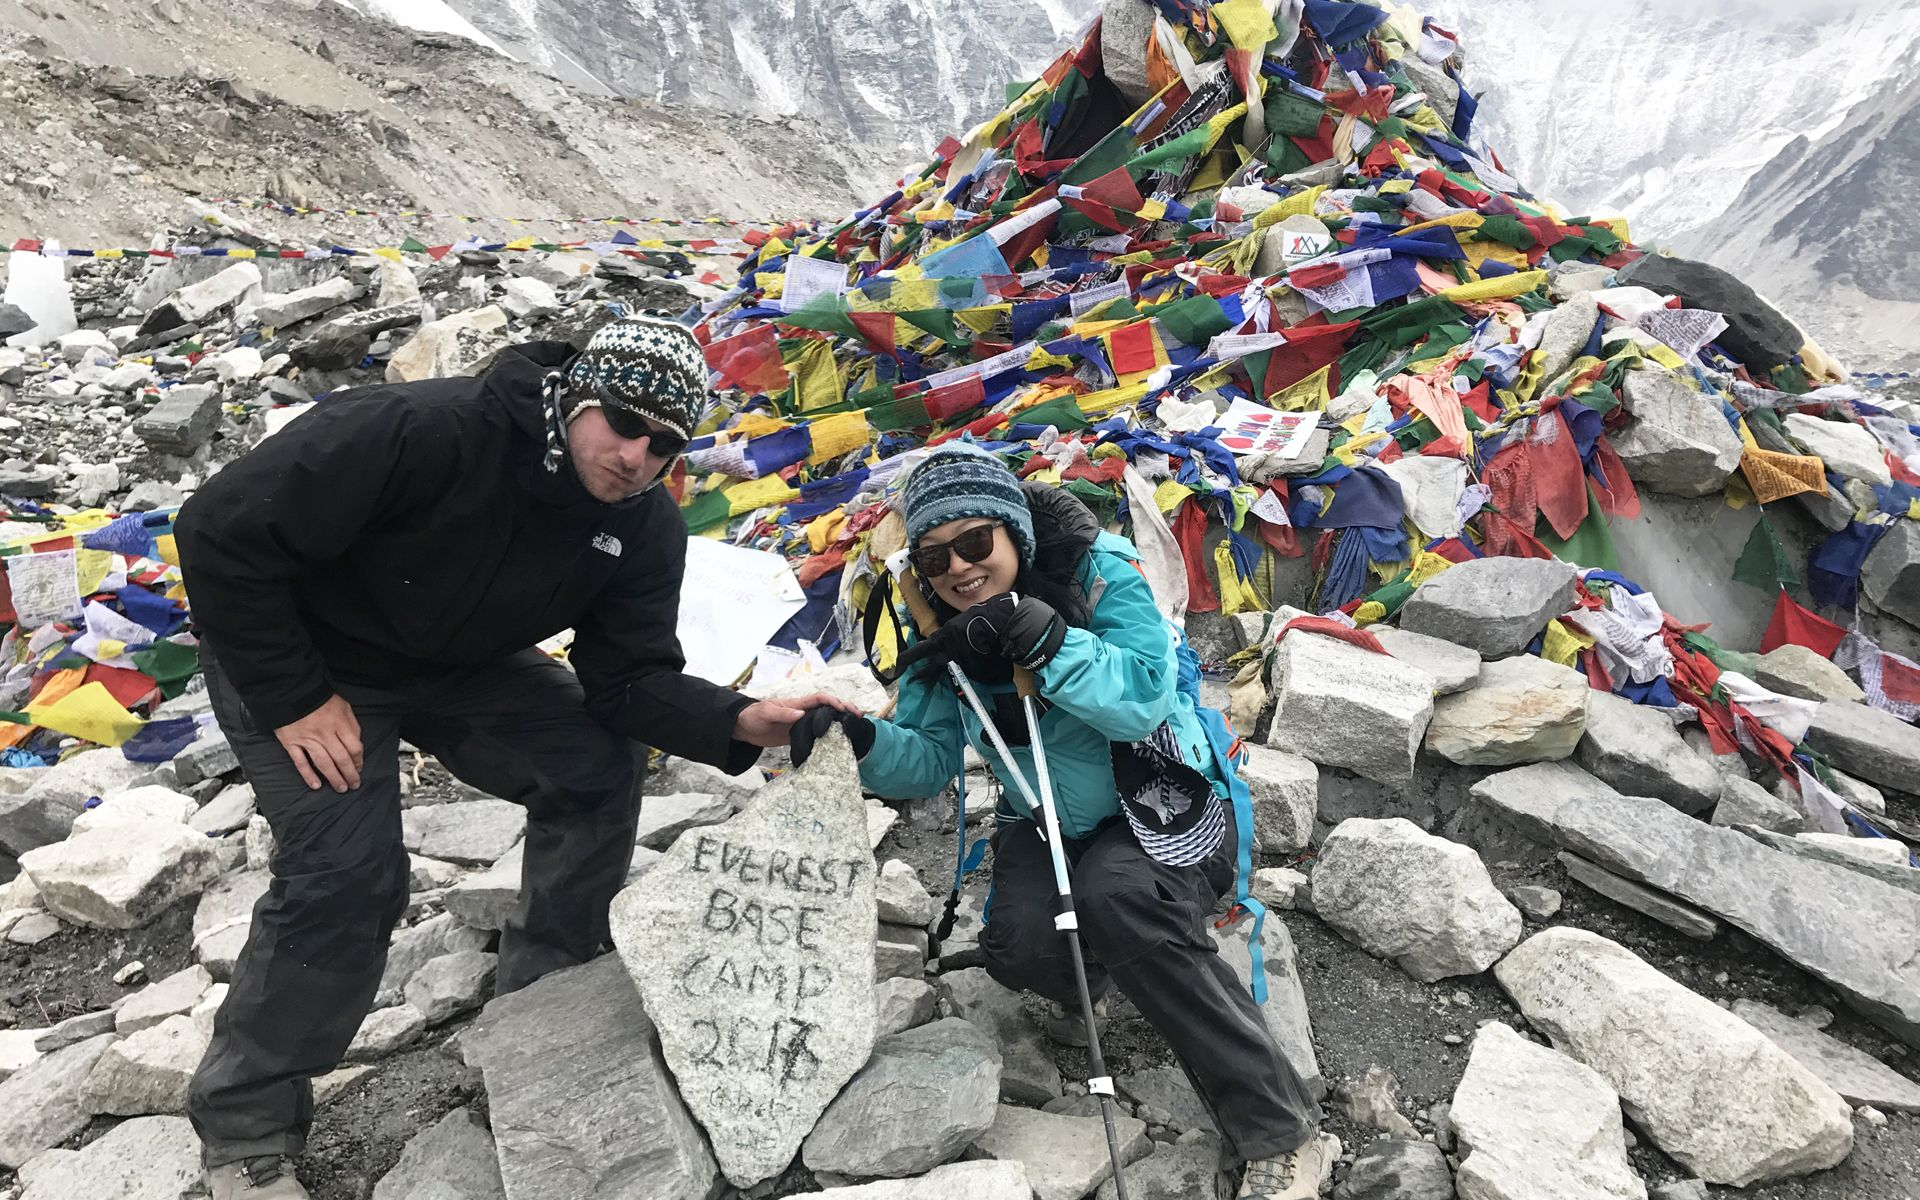 Gabrielle Tan-Helfman Conquers The Everest Base Camp With Willpower And She Thinks You Can, Too